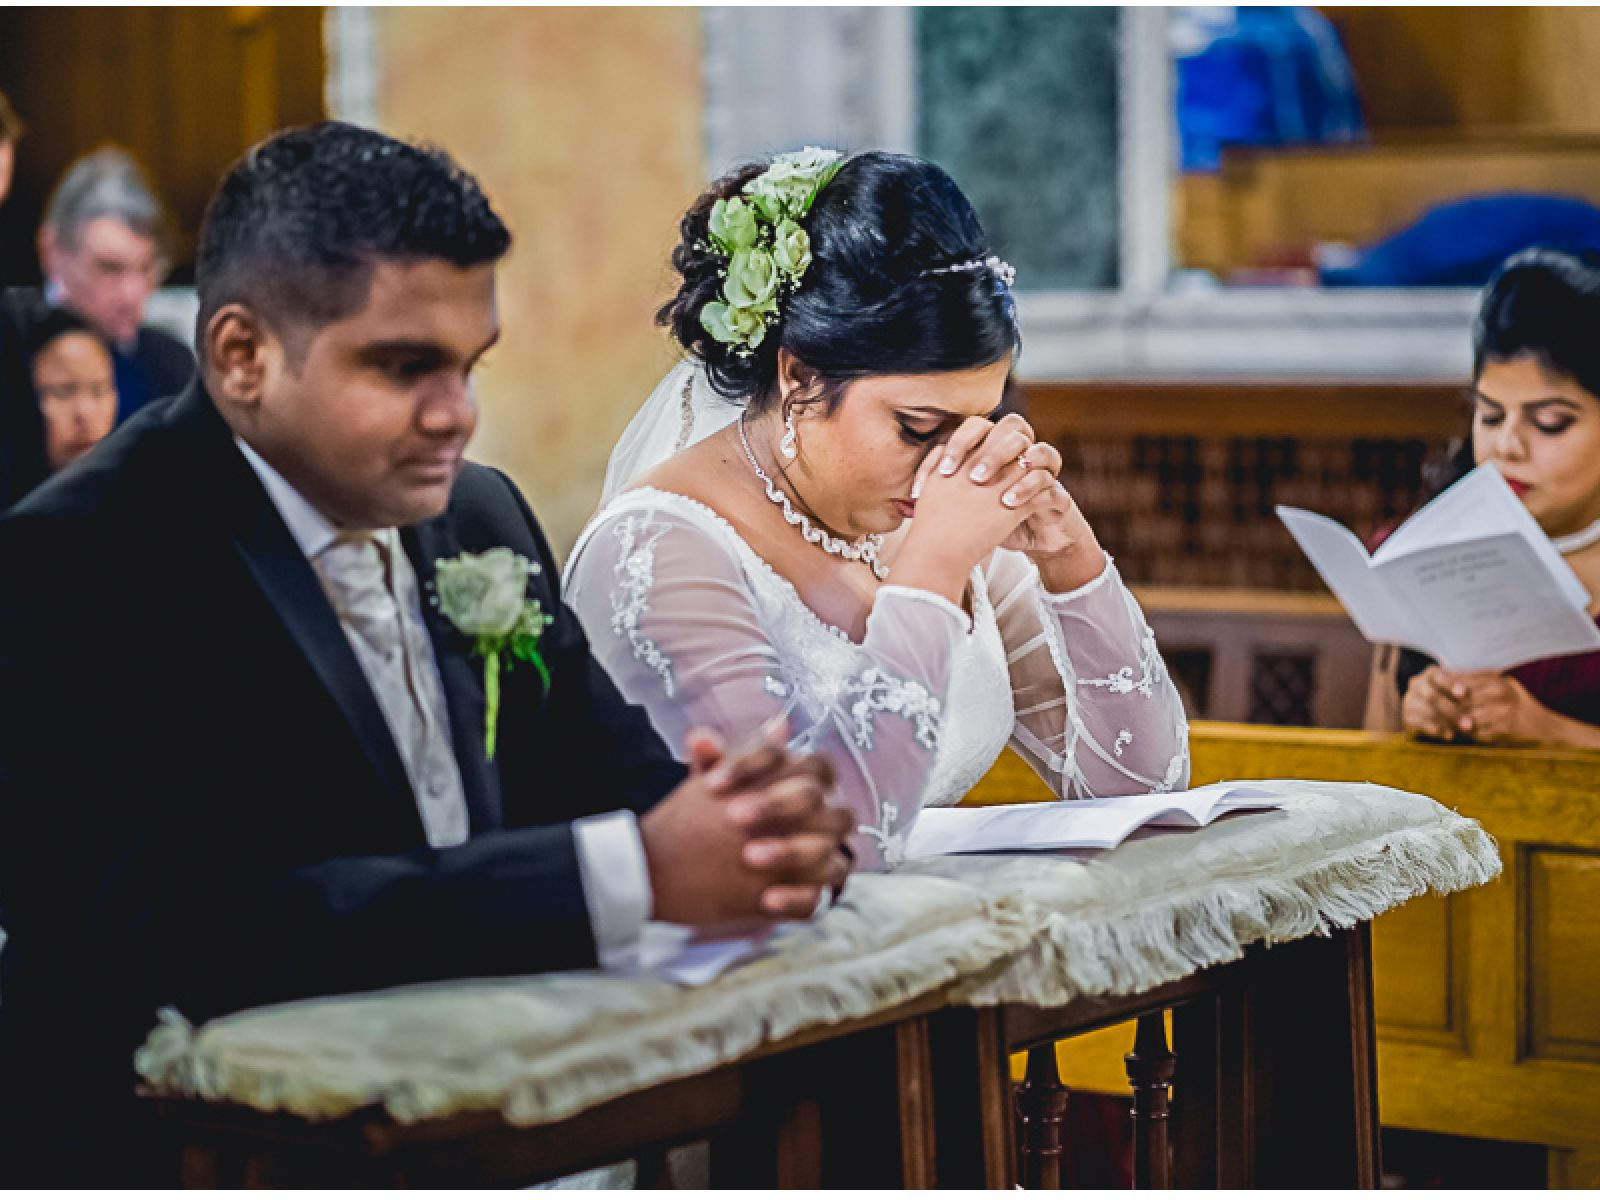 581 1600x1200 - Darshani and Anthony - wedding photographer in London